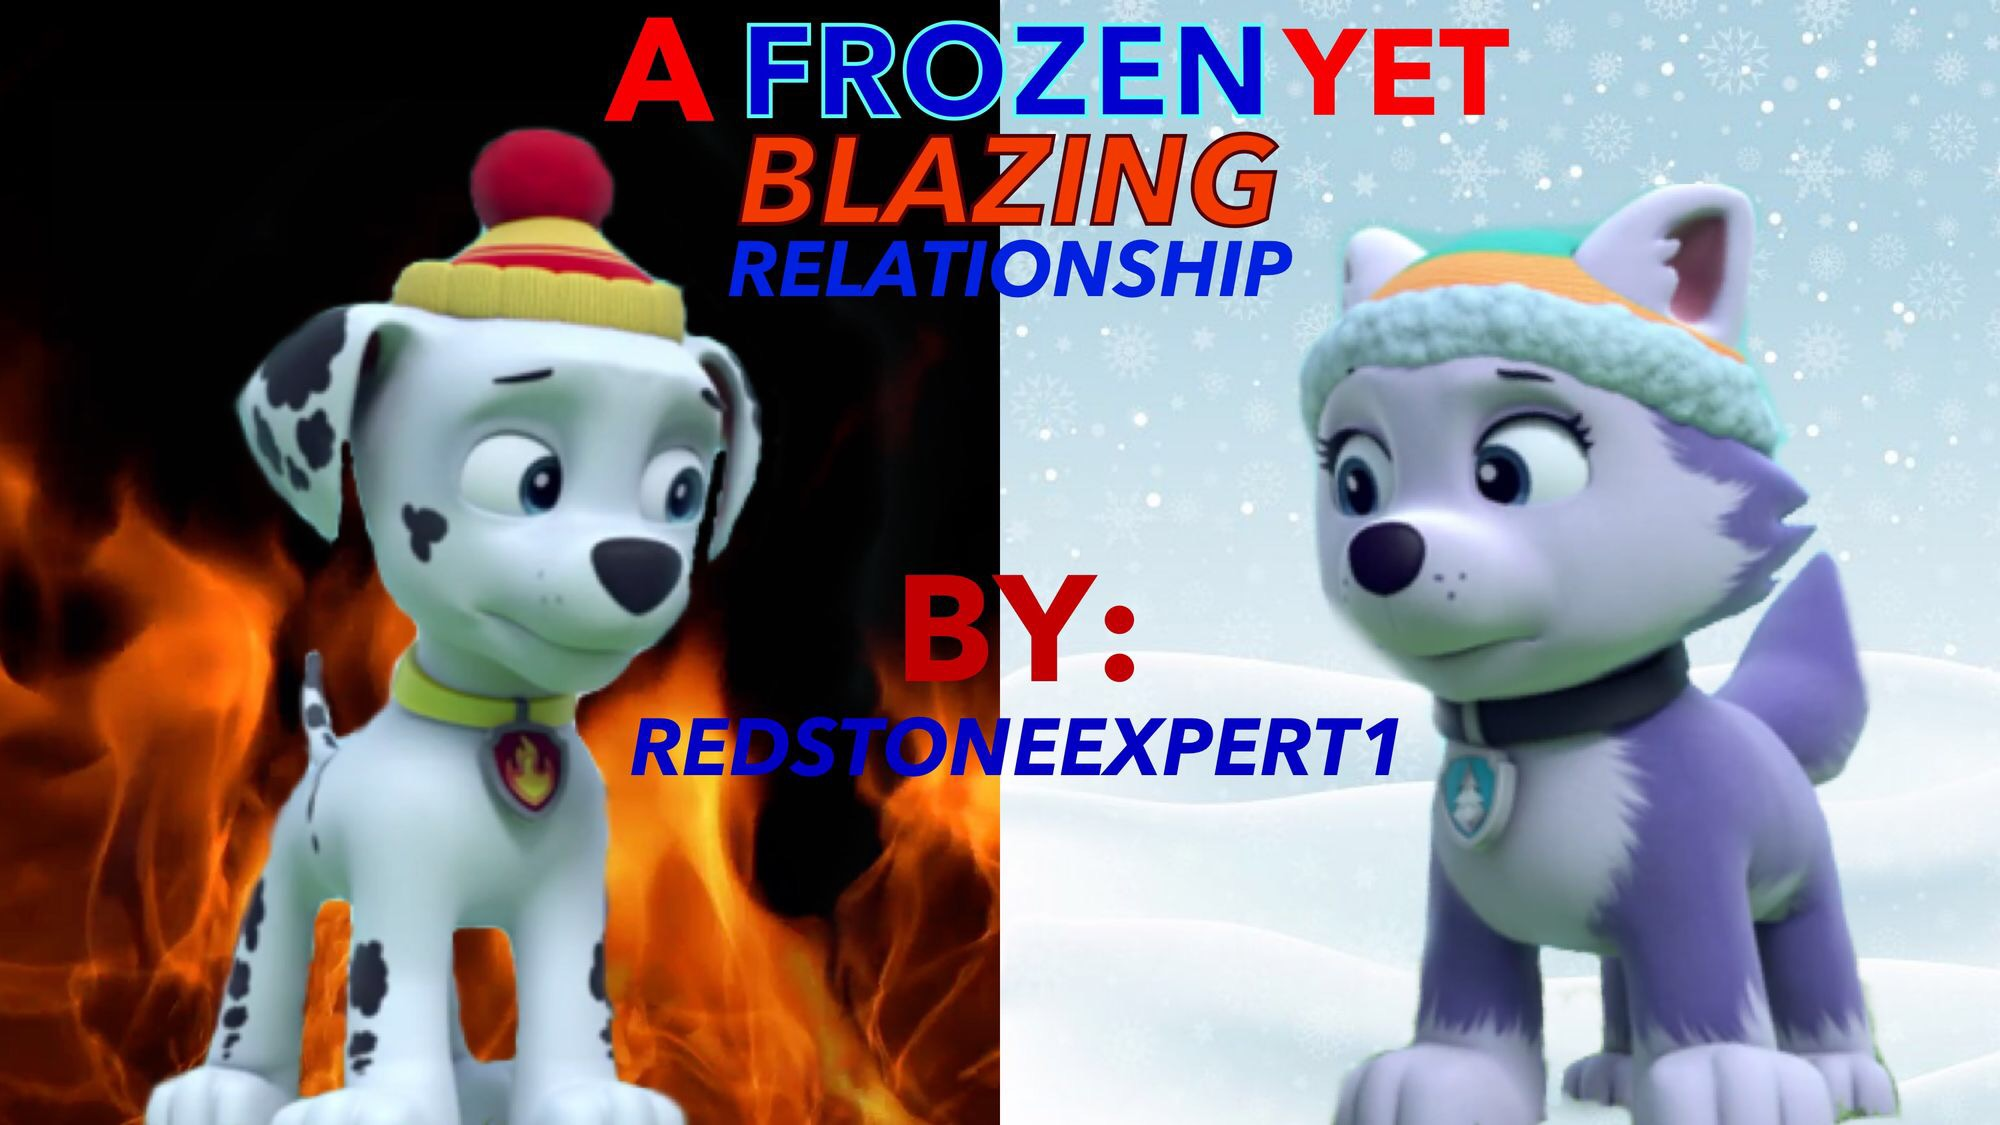 Delightful A Frozen Yet Blazing Relationship: A Marshall X Everest Fanfic